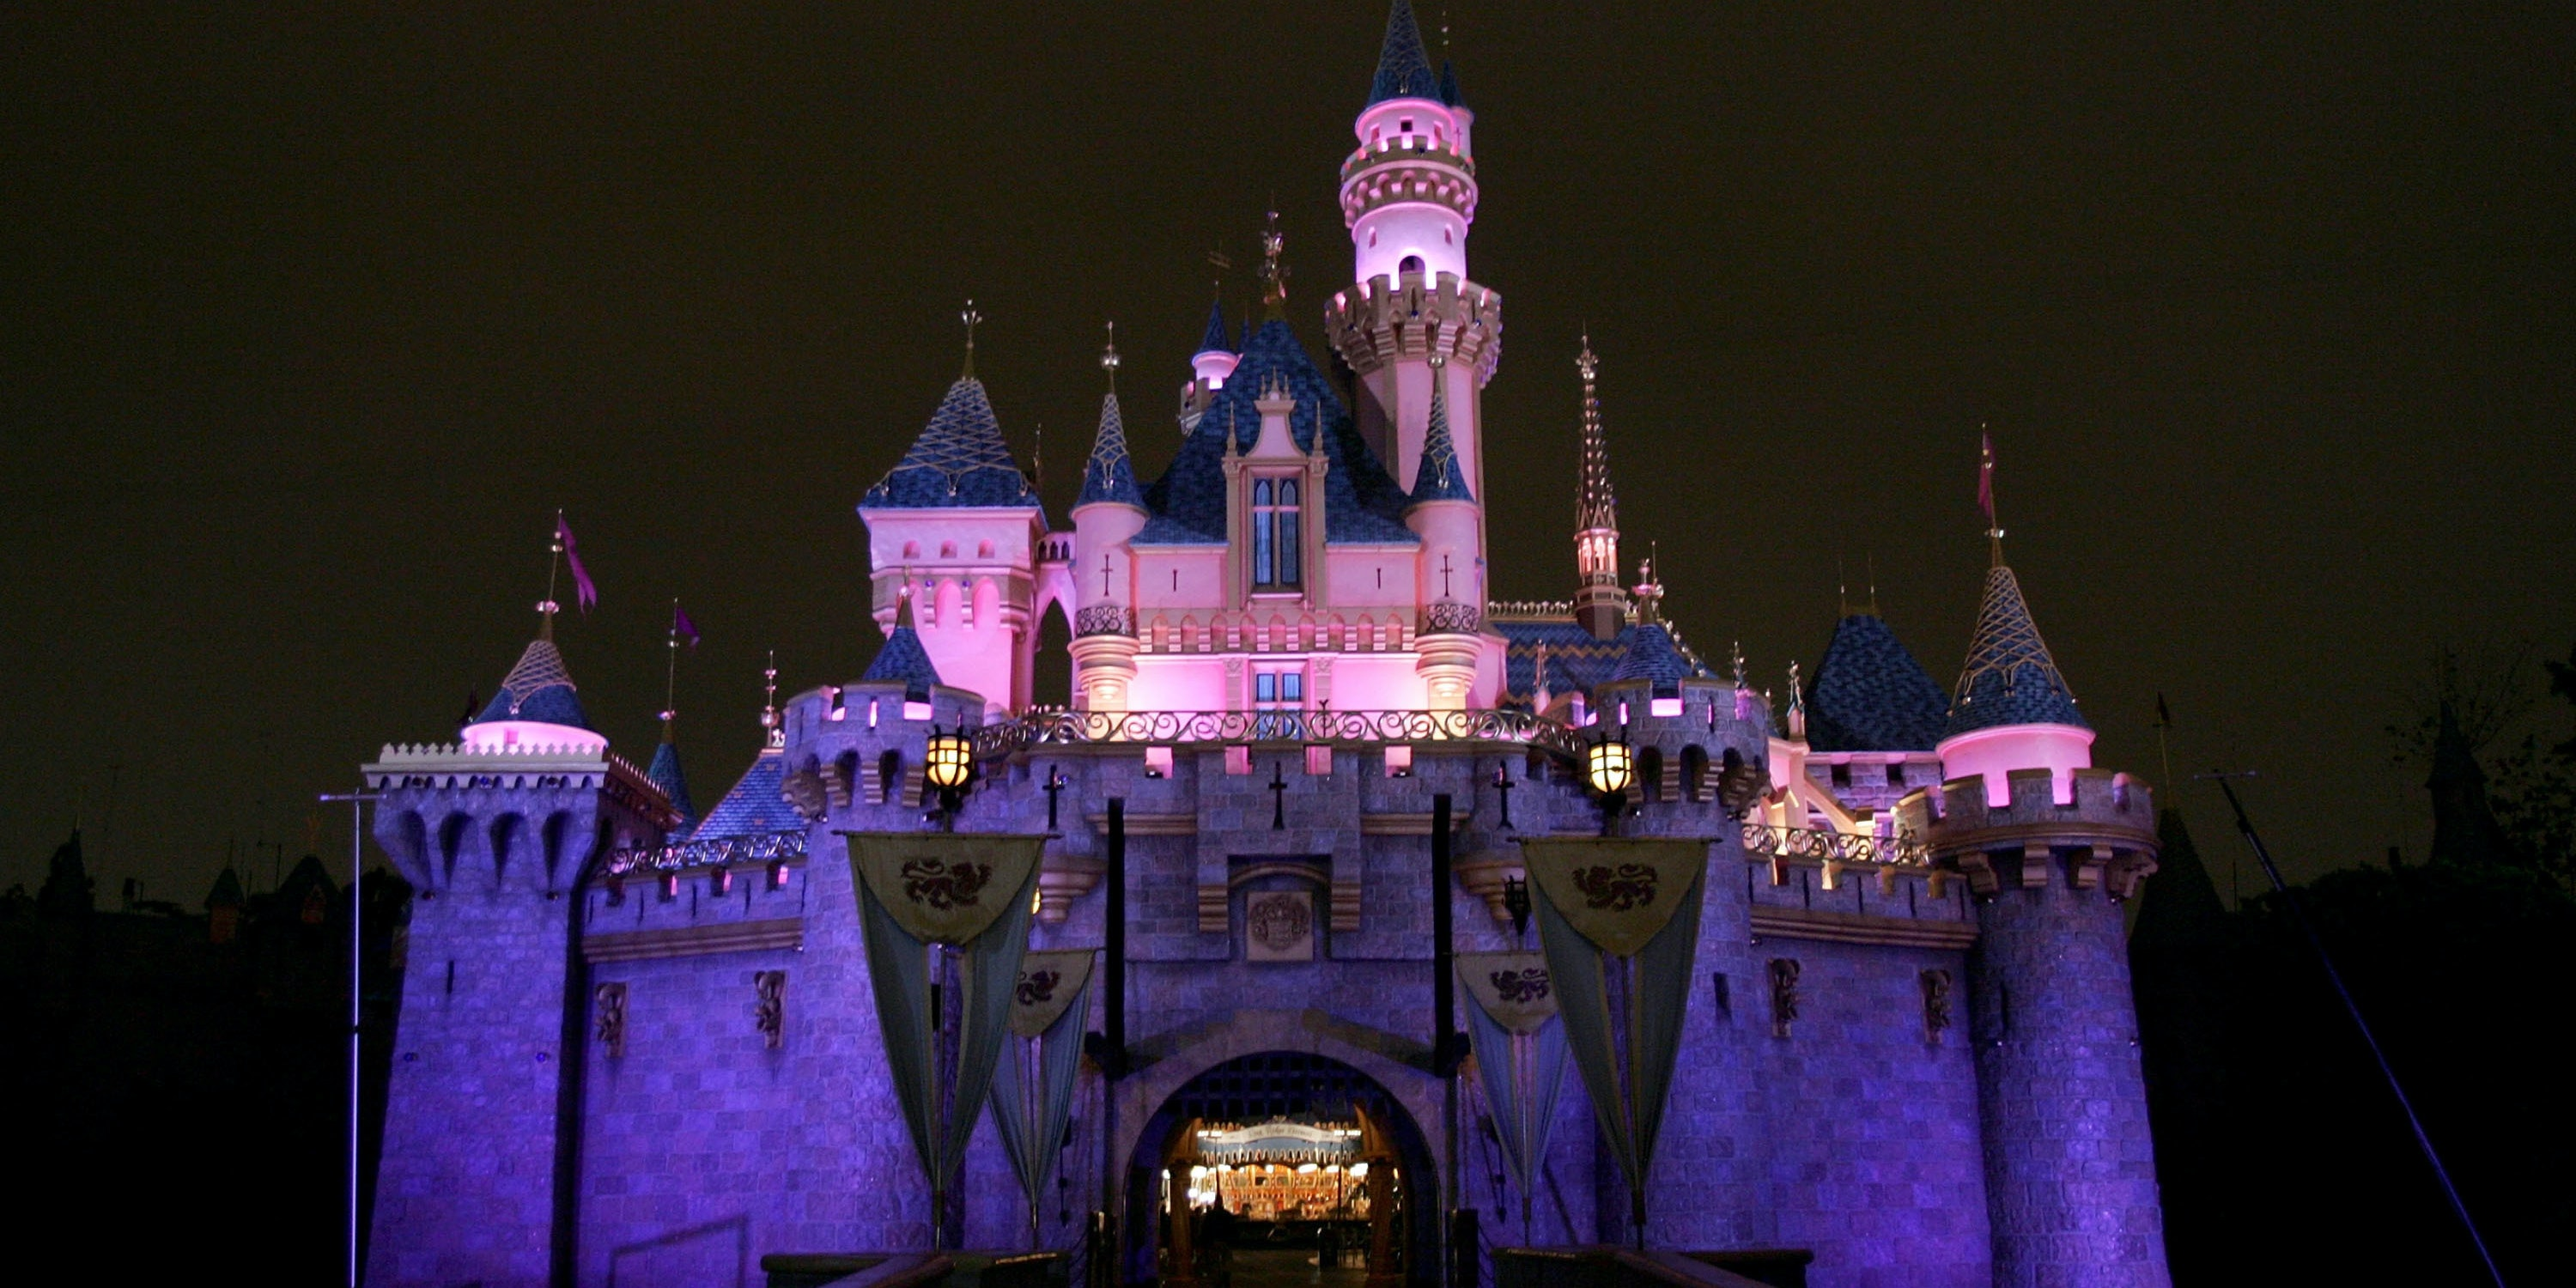 You Can Move to Disneyland, But Disney Is Moving, Too